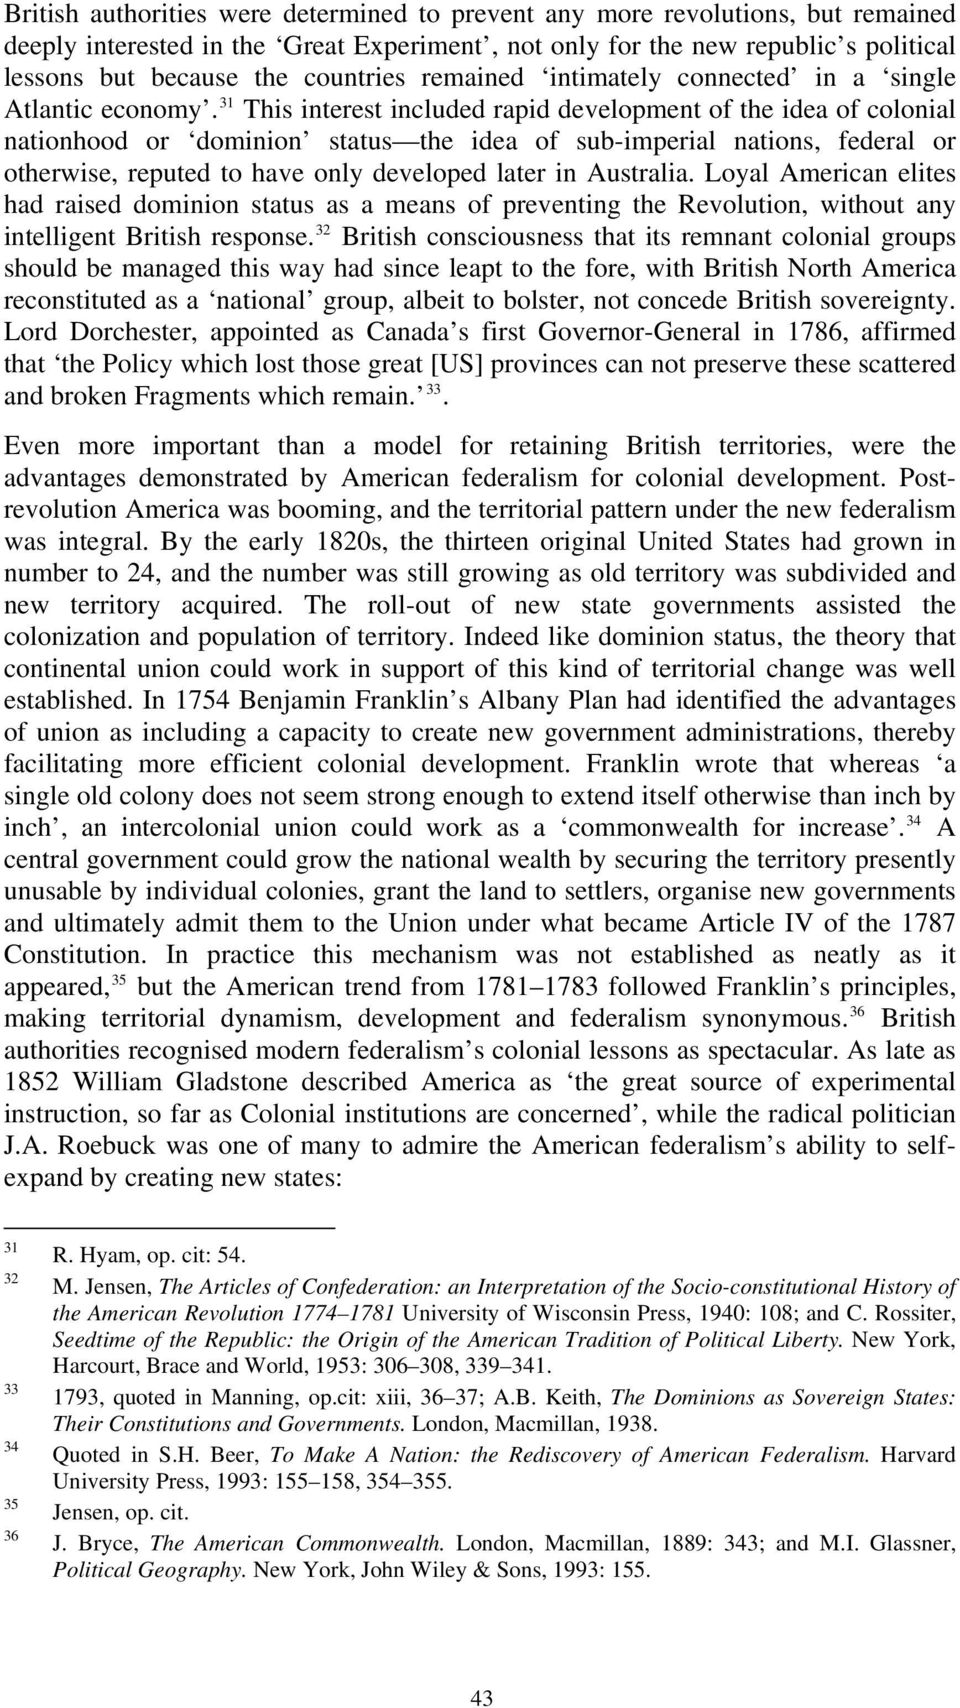 31 This interest included rapid development of the idea of colonial nationhood or dominion status the idea of sub-imperial nations, federal or otherwise, reputed to have only developed later in